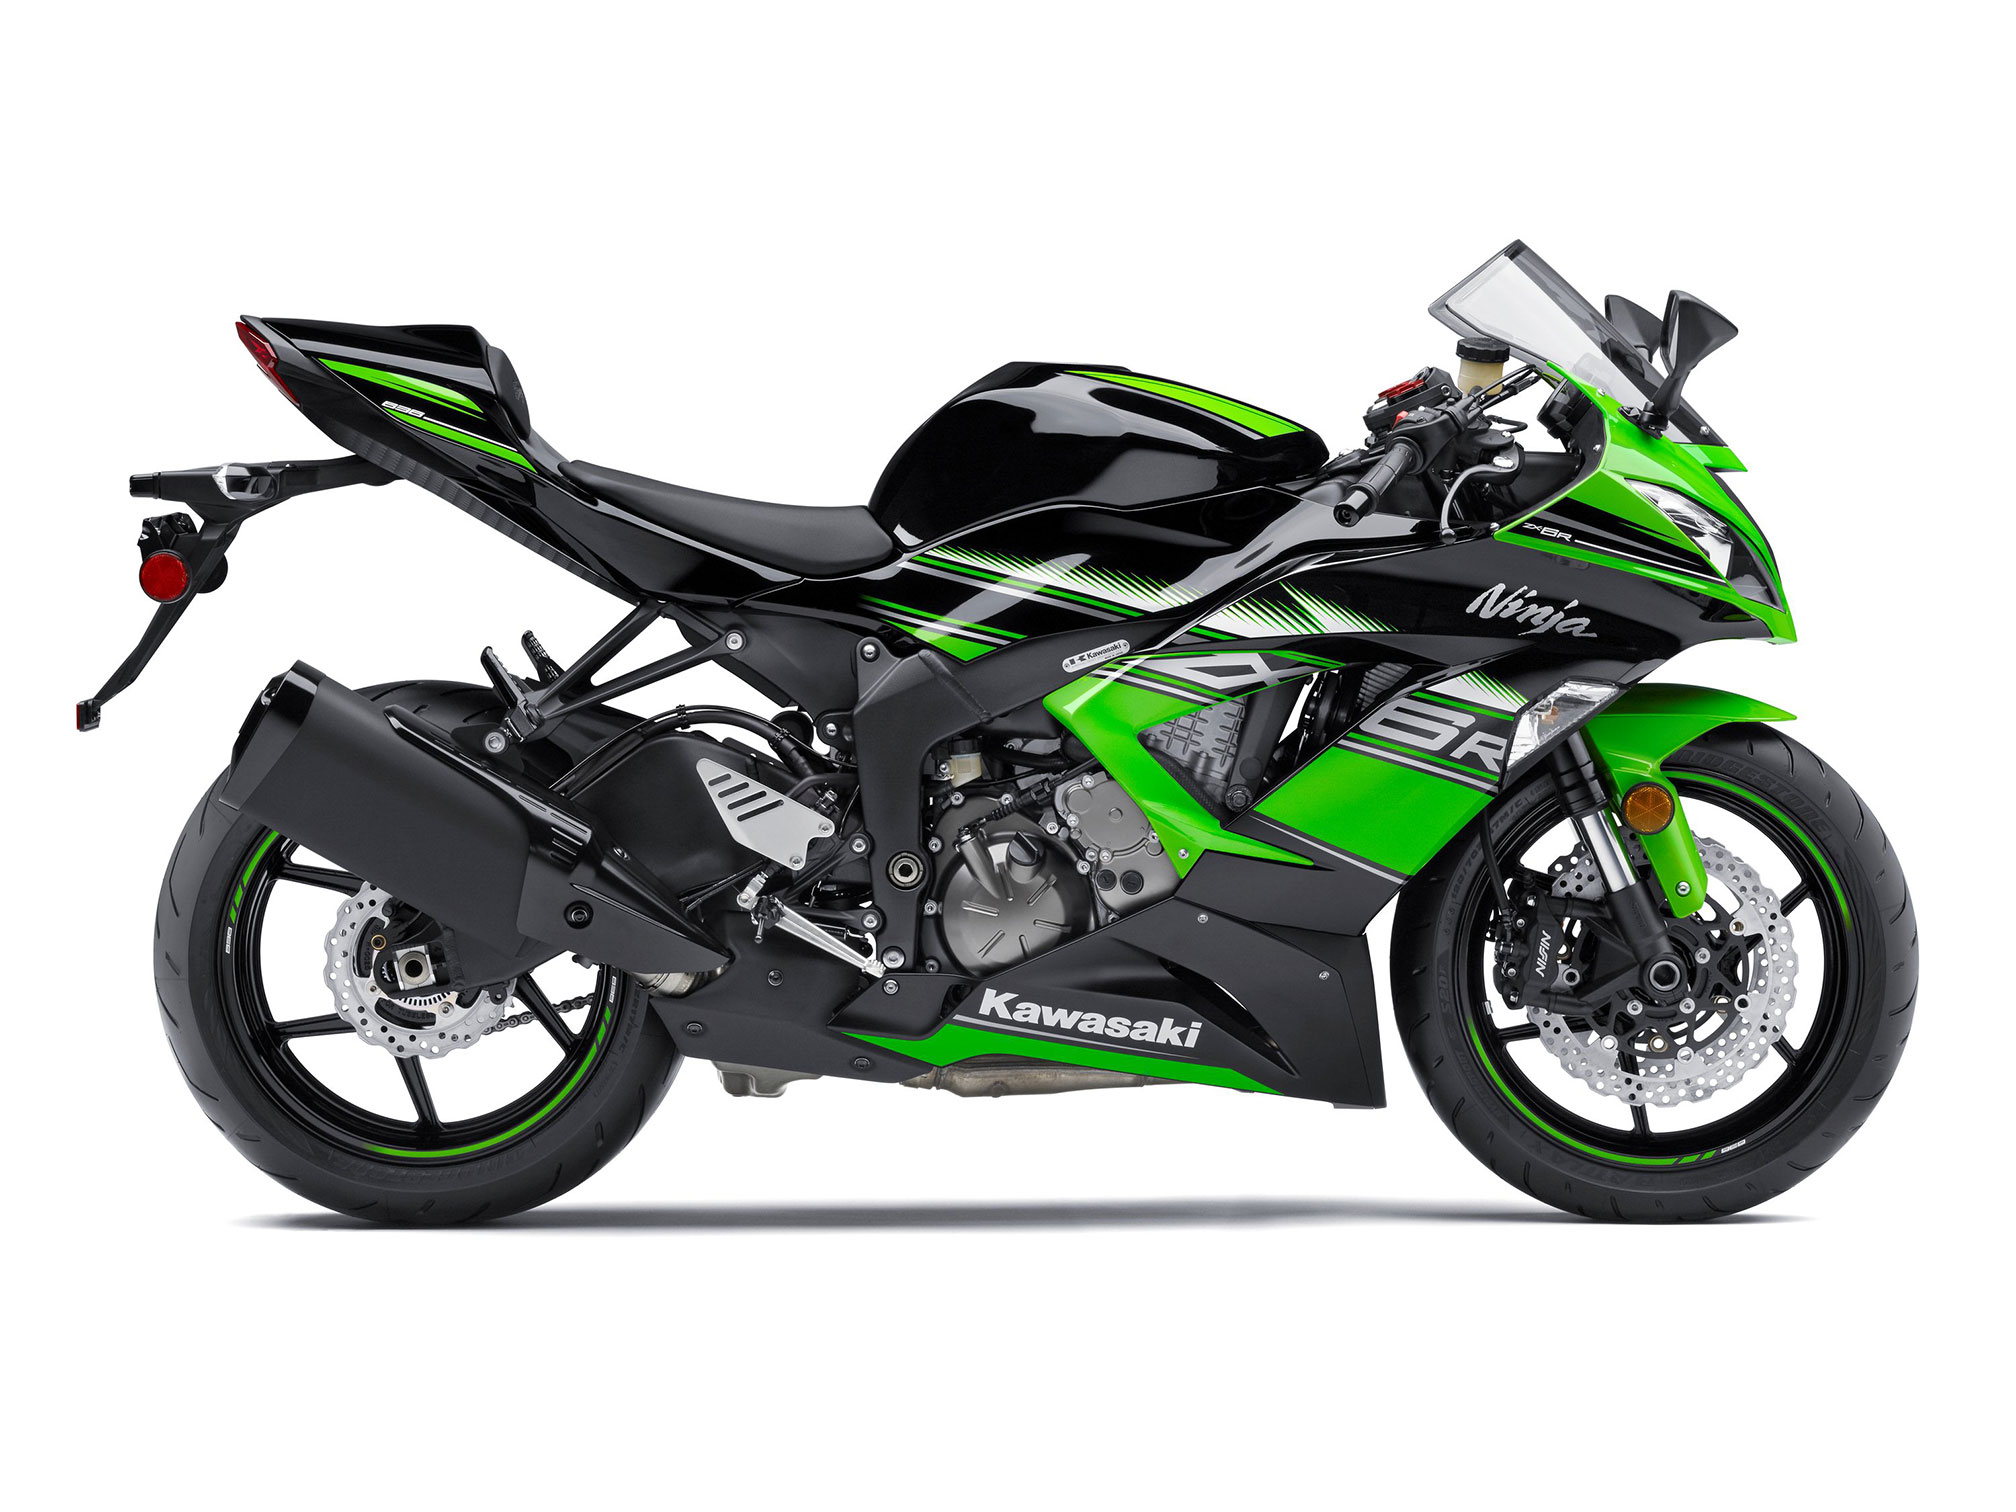 2016 kawasaki ninja zx 6r krt edition review rh totalmotorcycle com